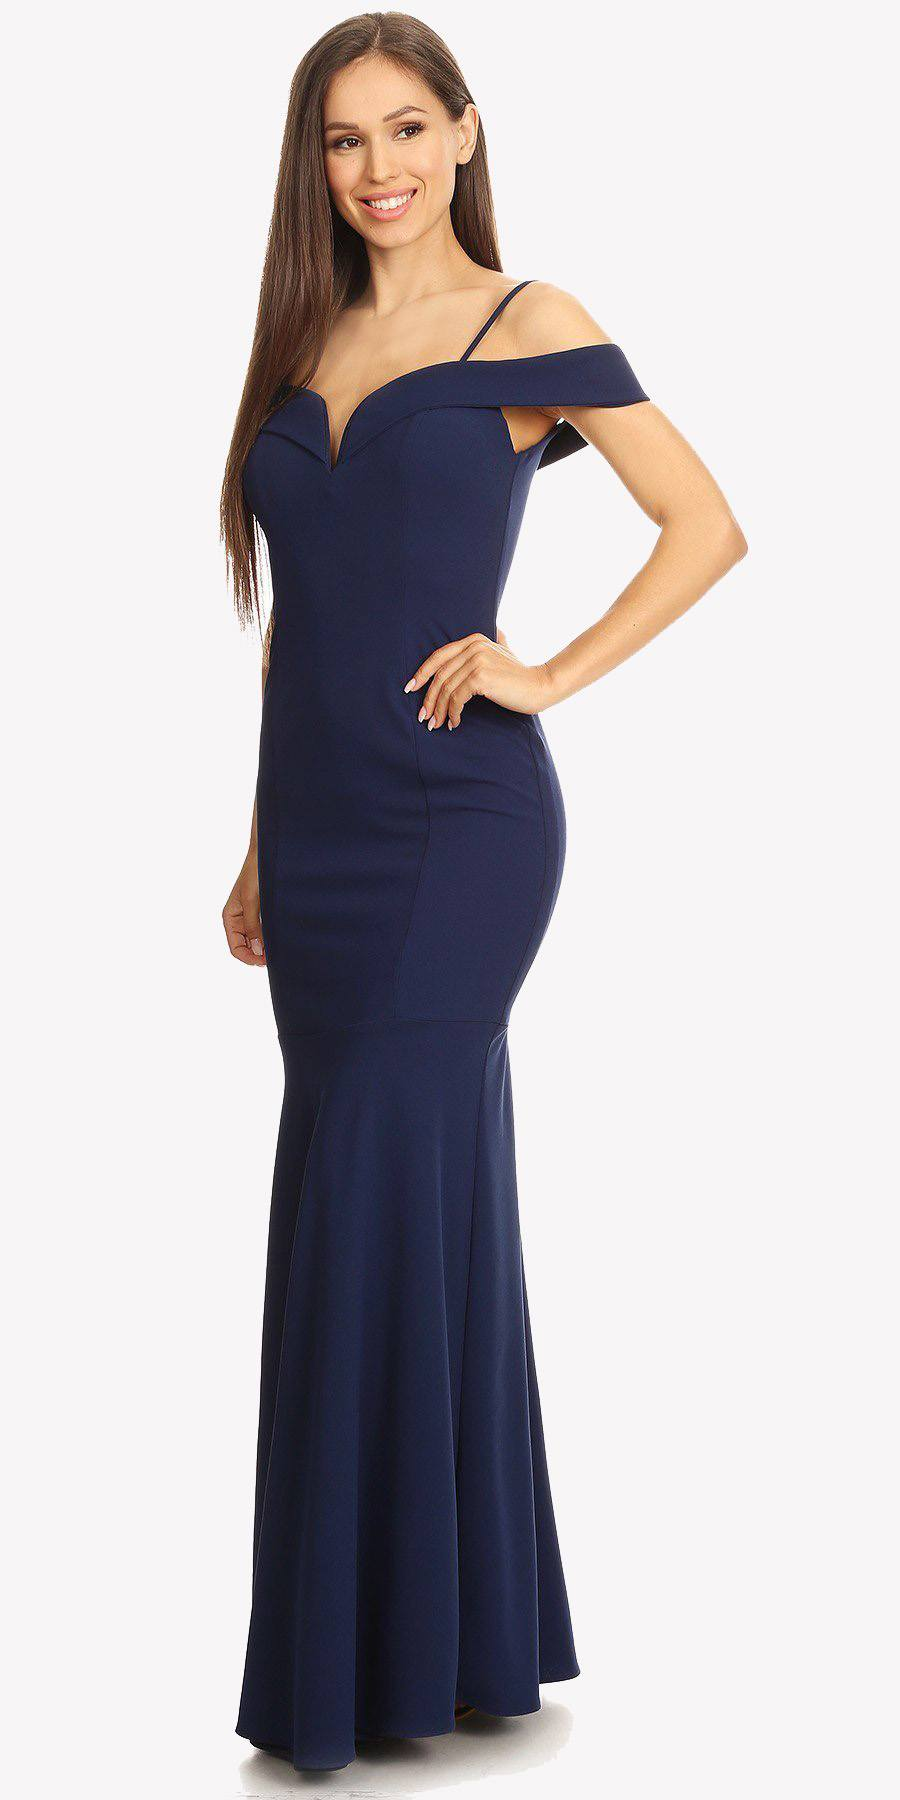 20c66ae4ff49 ... Navy Off Shoulder Mermaid Style Evening Gown with Sweetheart Neckline  ...